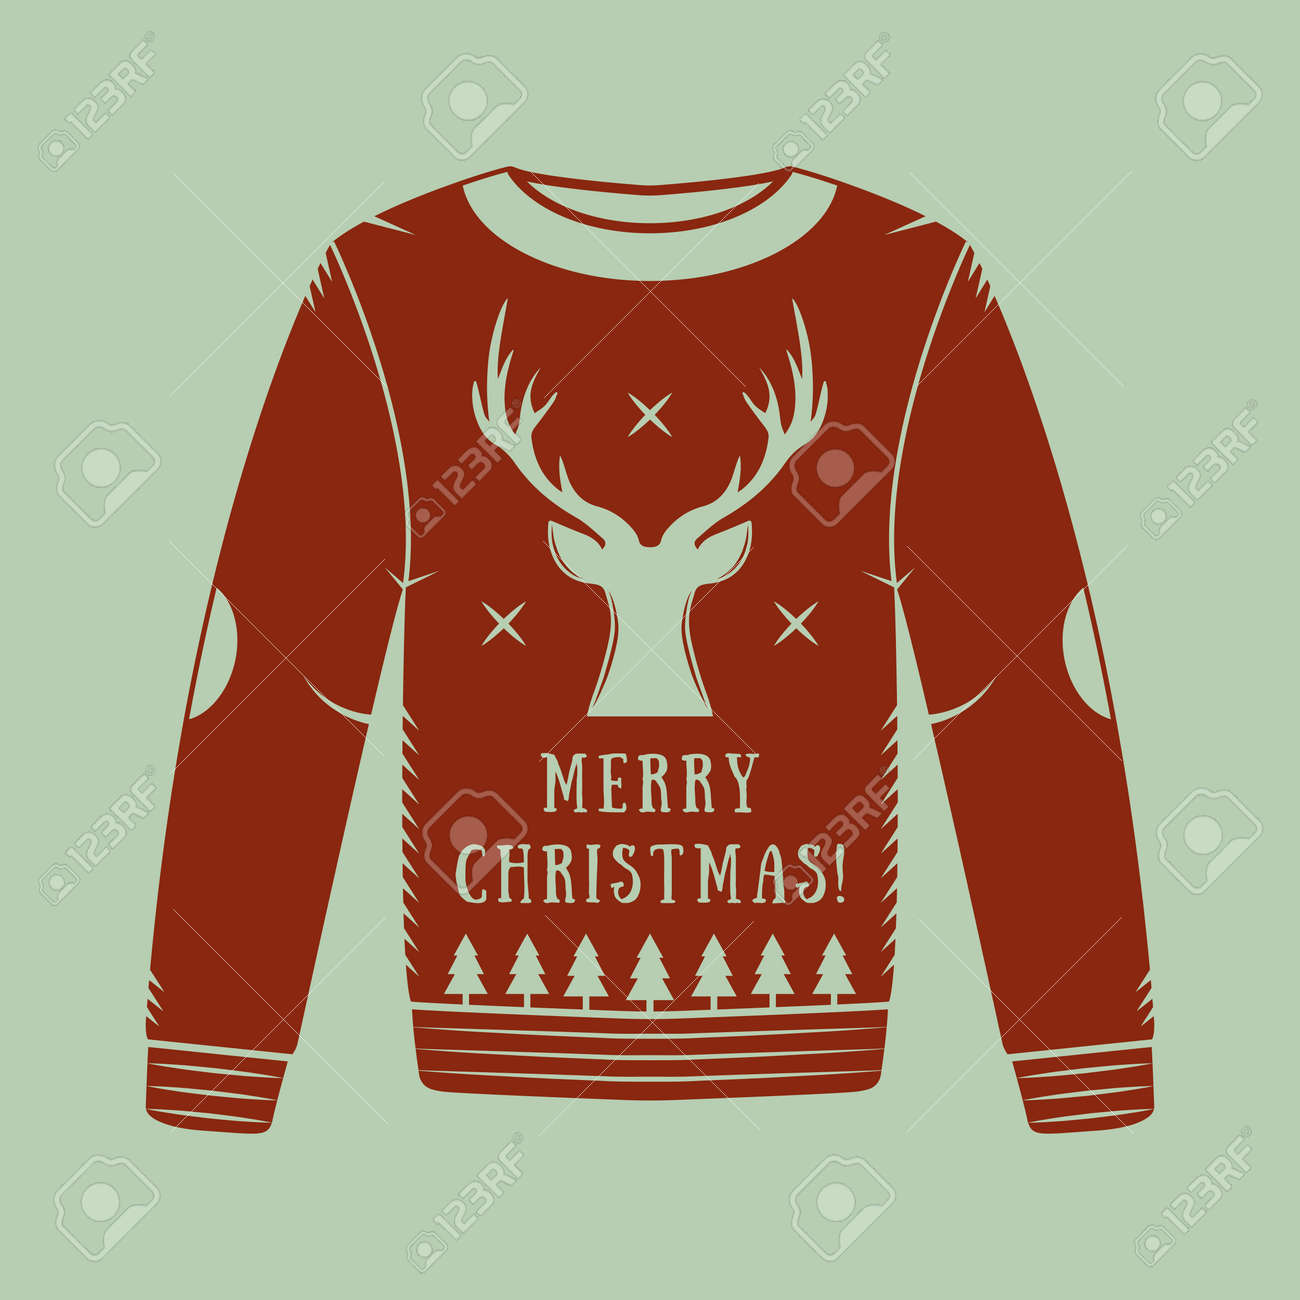 Vintage Christmas Sweaters.Vintage Christmas Sweater With Deer Trees And Stars In Red